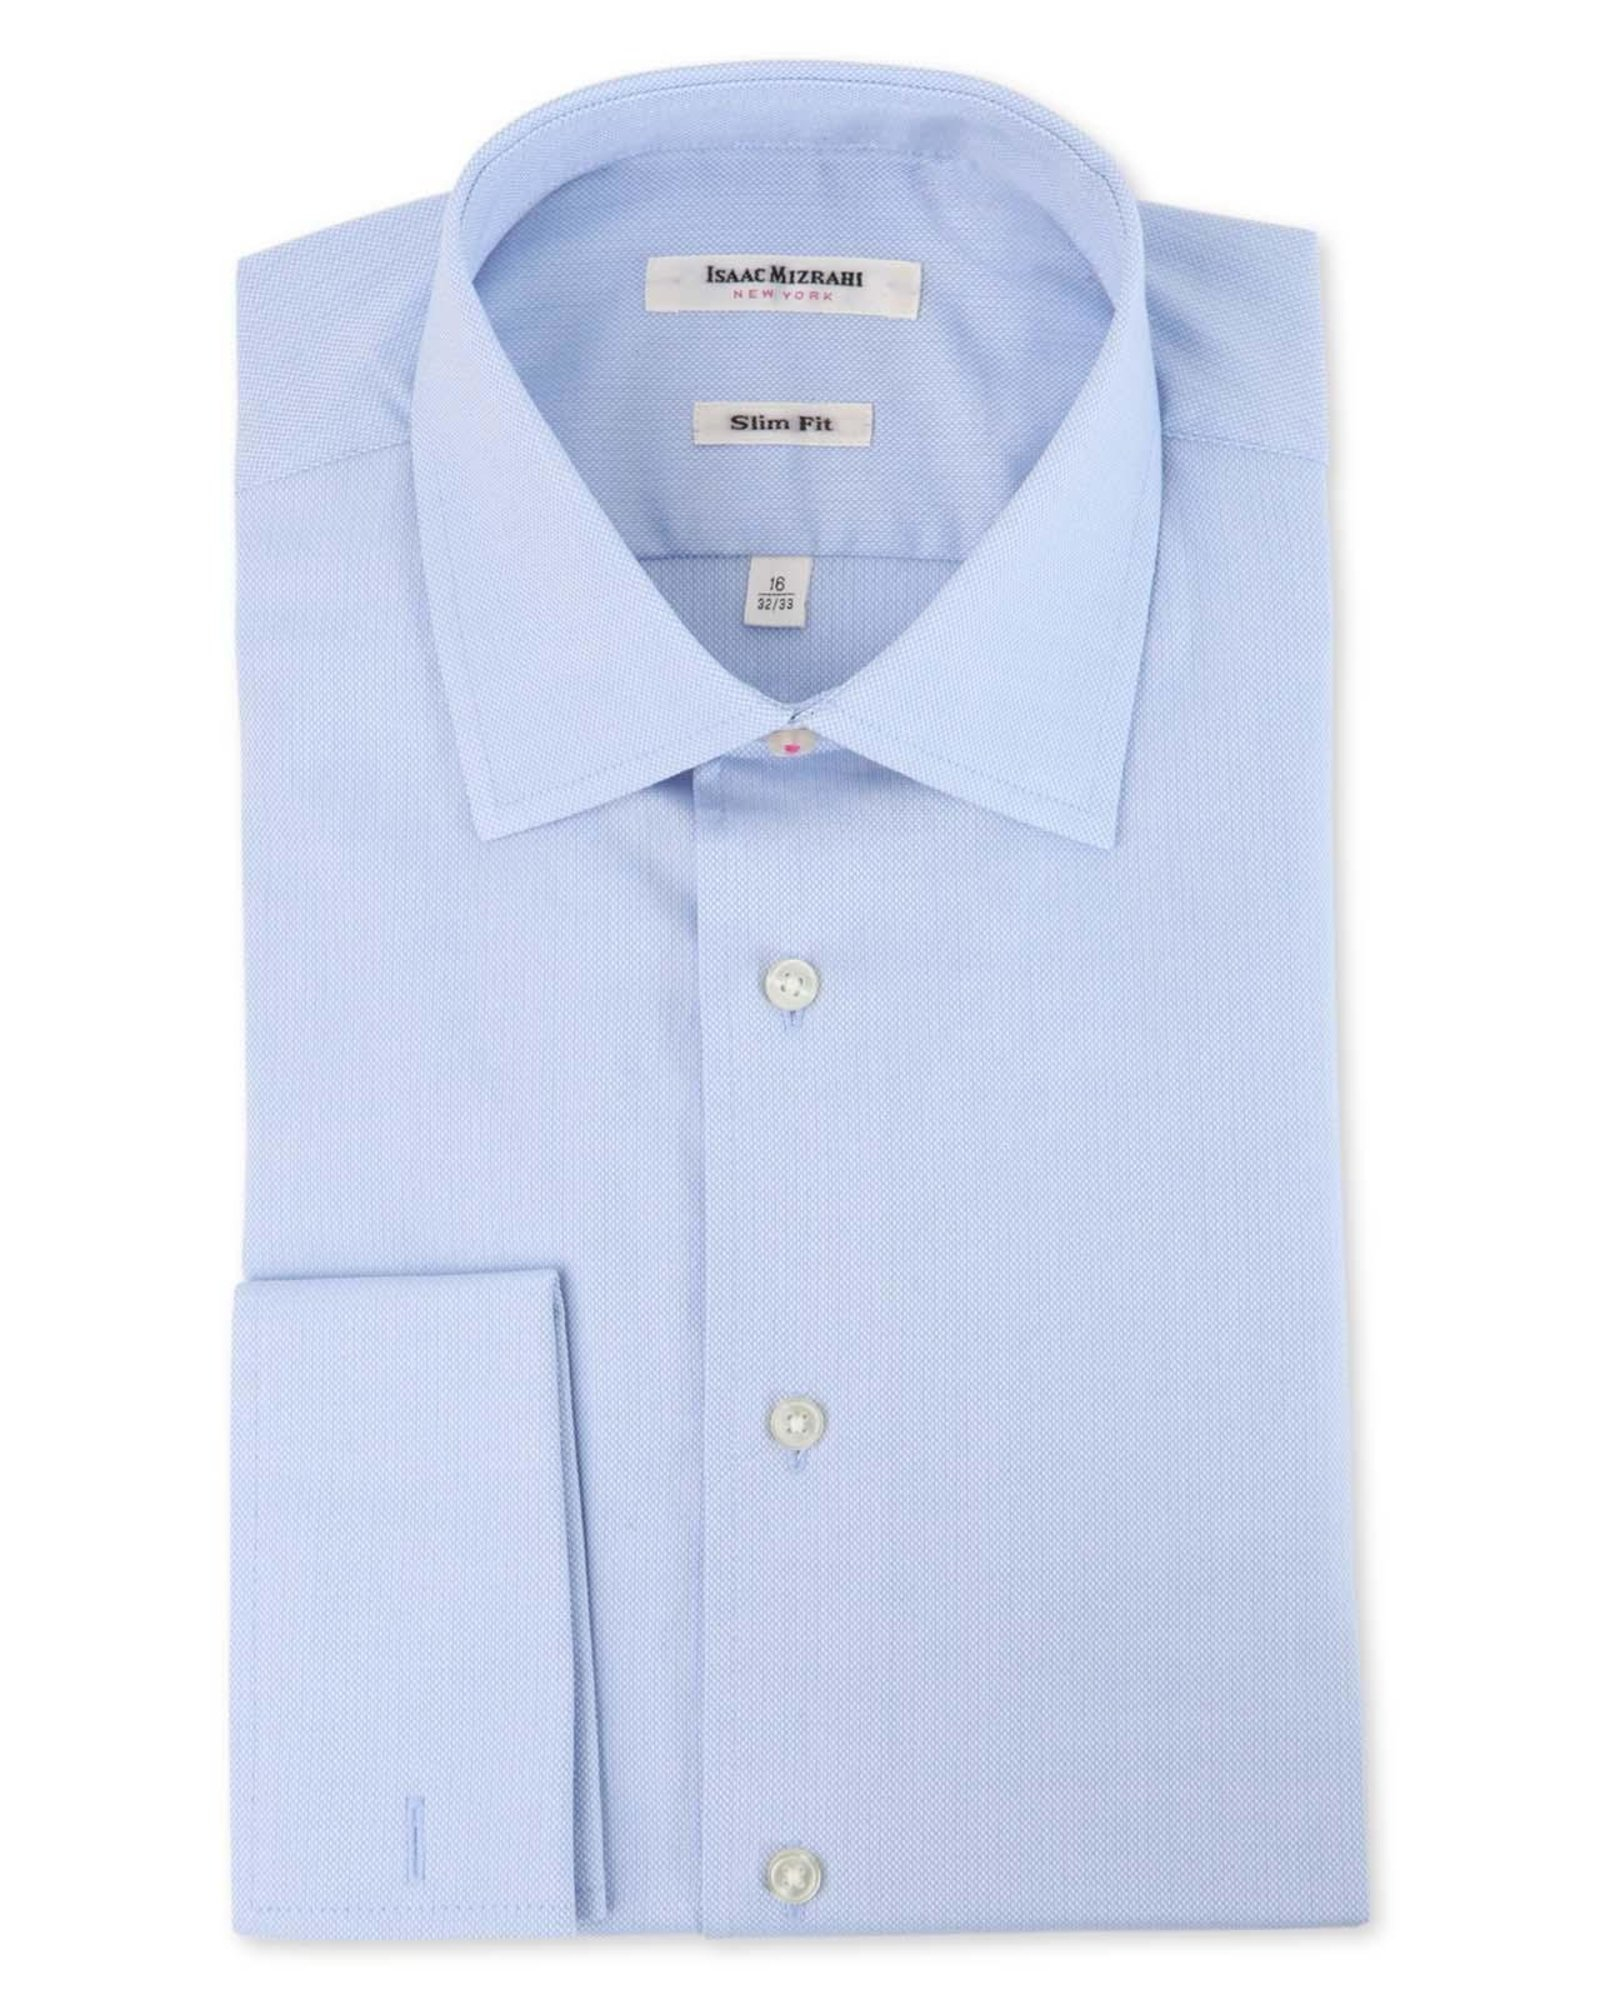 Isaac mizrahi new york slim fit french cuff dress shirt in for Mens dress shirts french cuffs